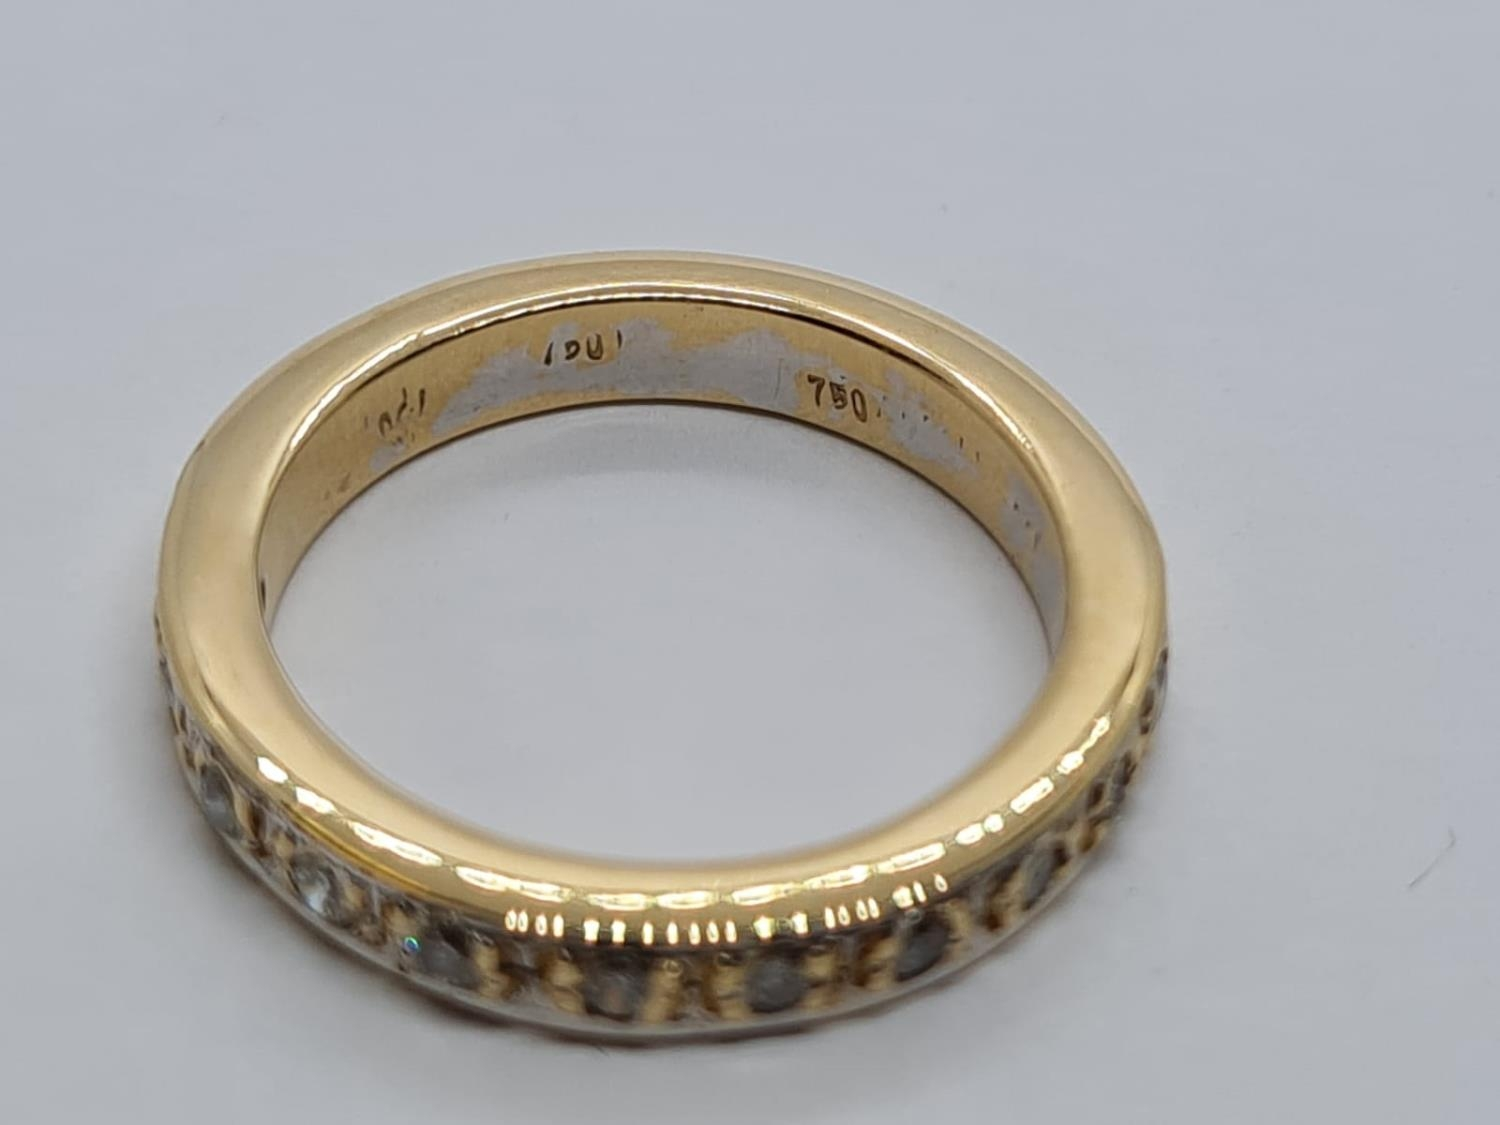 18ct Gold and Diamond Eternity RING. 5.2g Size K/L - Image 3 of 3